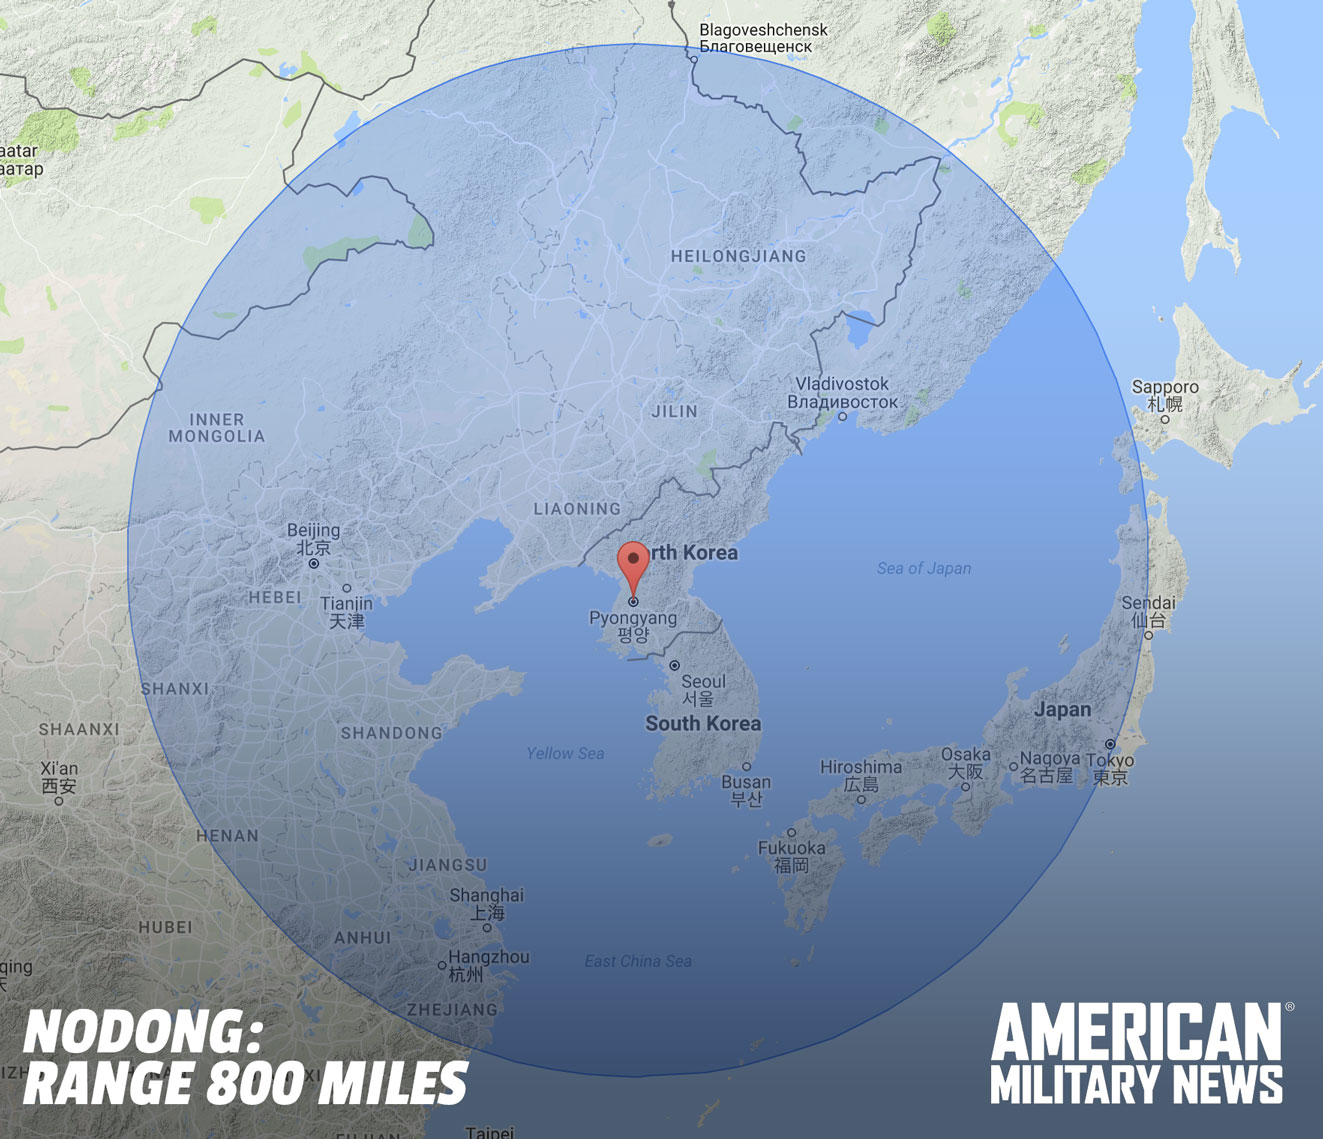 NoDong Range - How to survive a nuclear attack, and current North Korean missile ranges